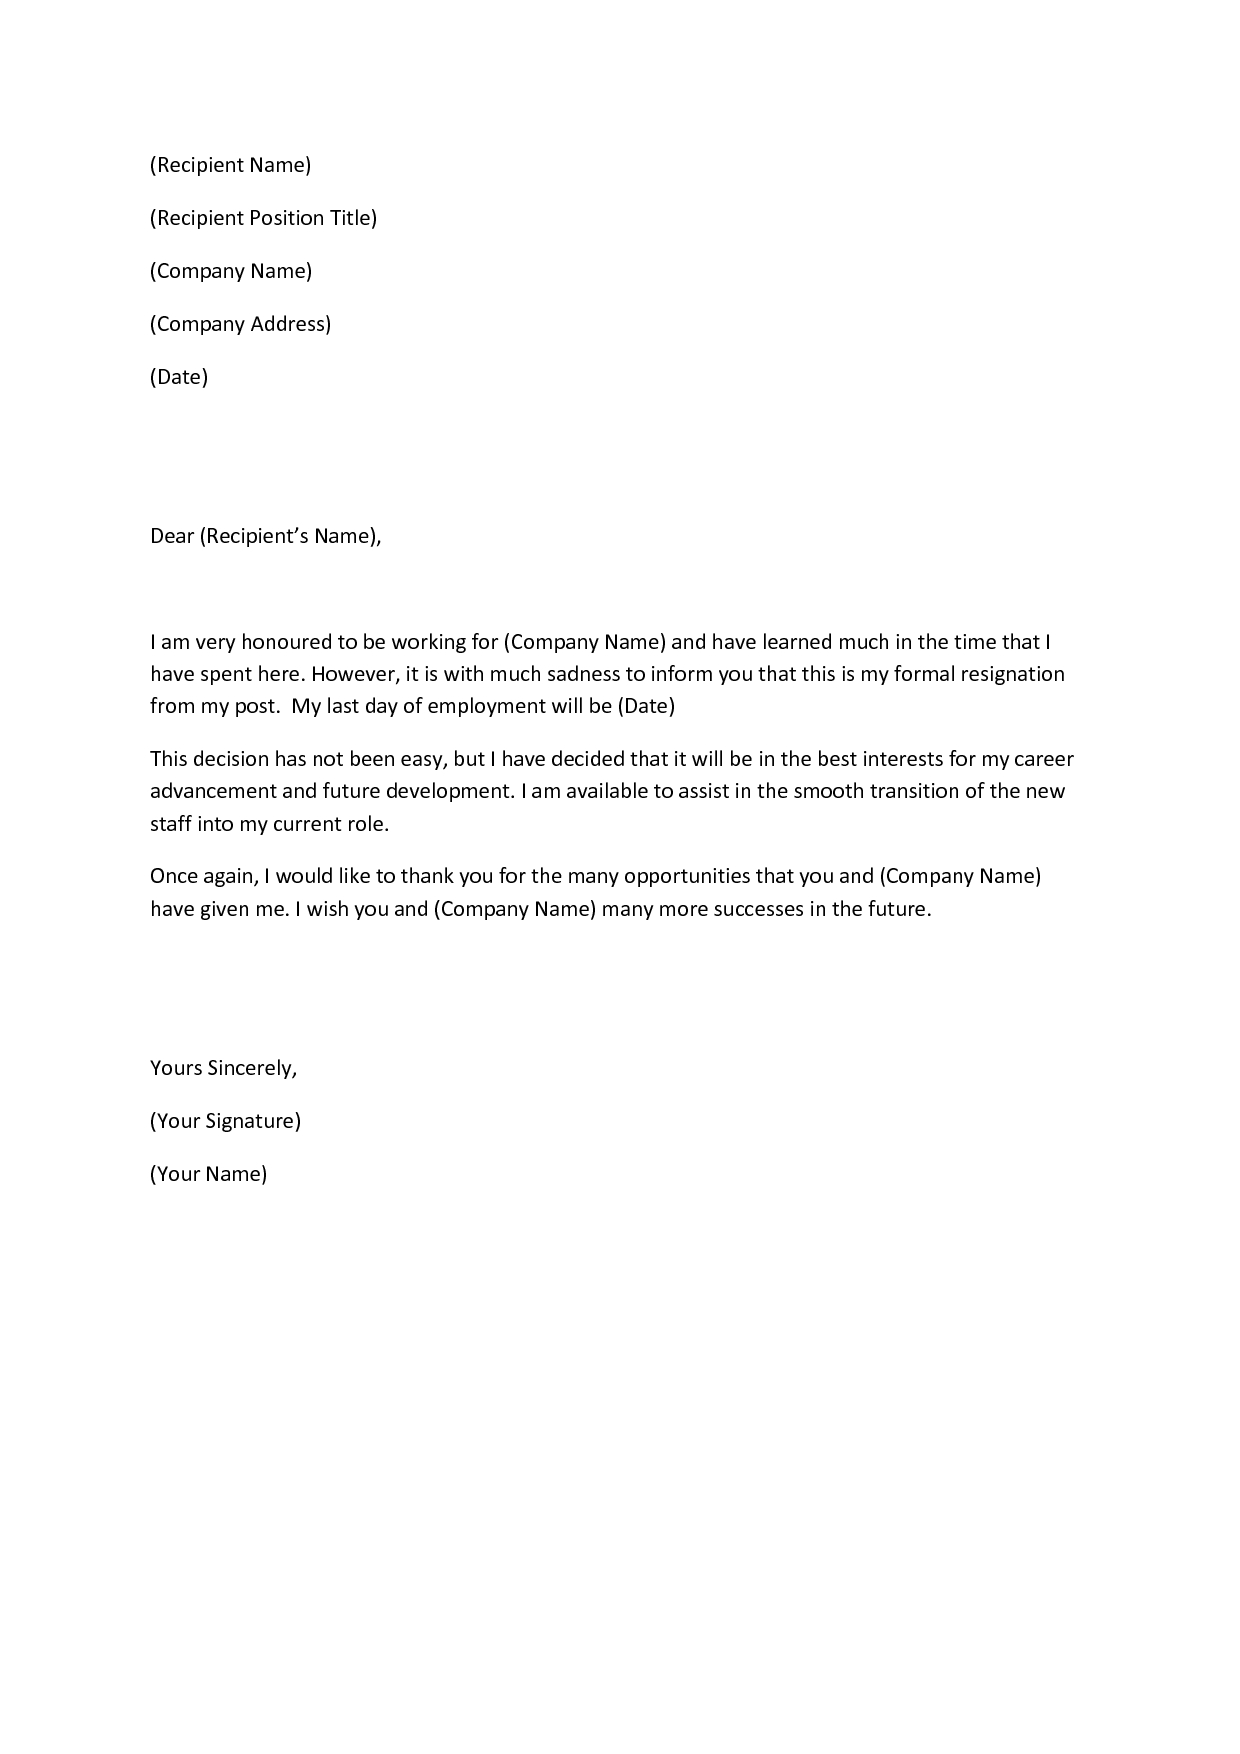 7 Day Notice Letter Construction Template - This Article Will Include Multiple Sample Letters for Quitting A Job